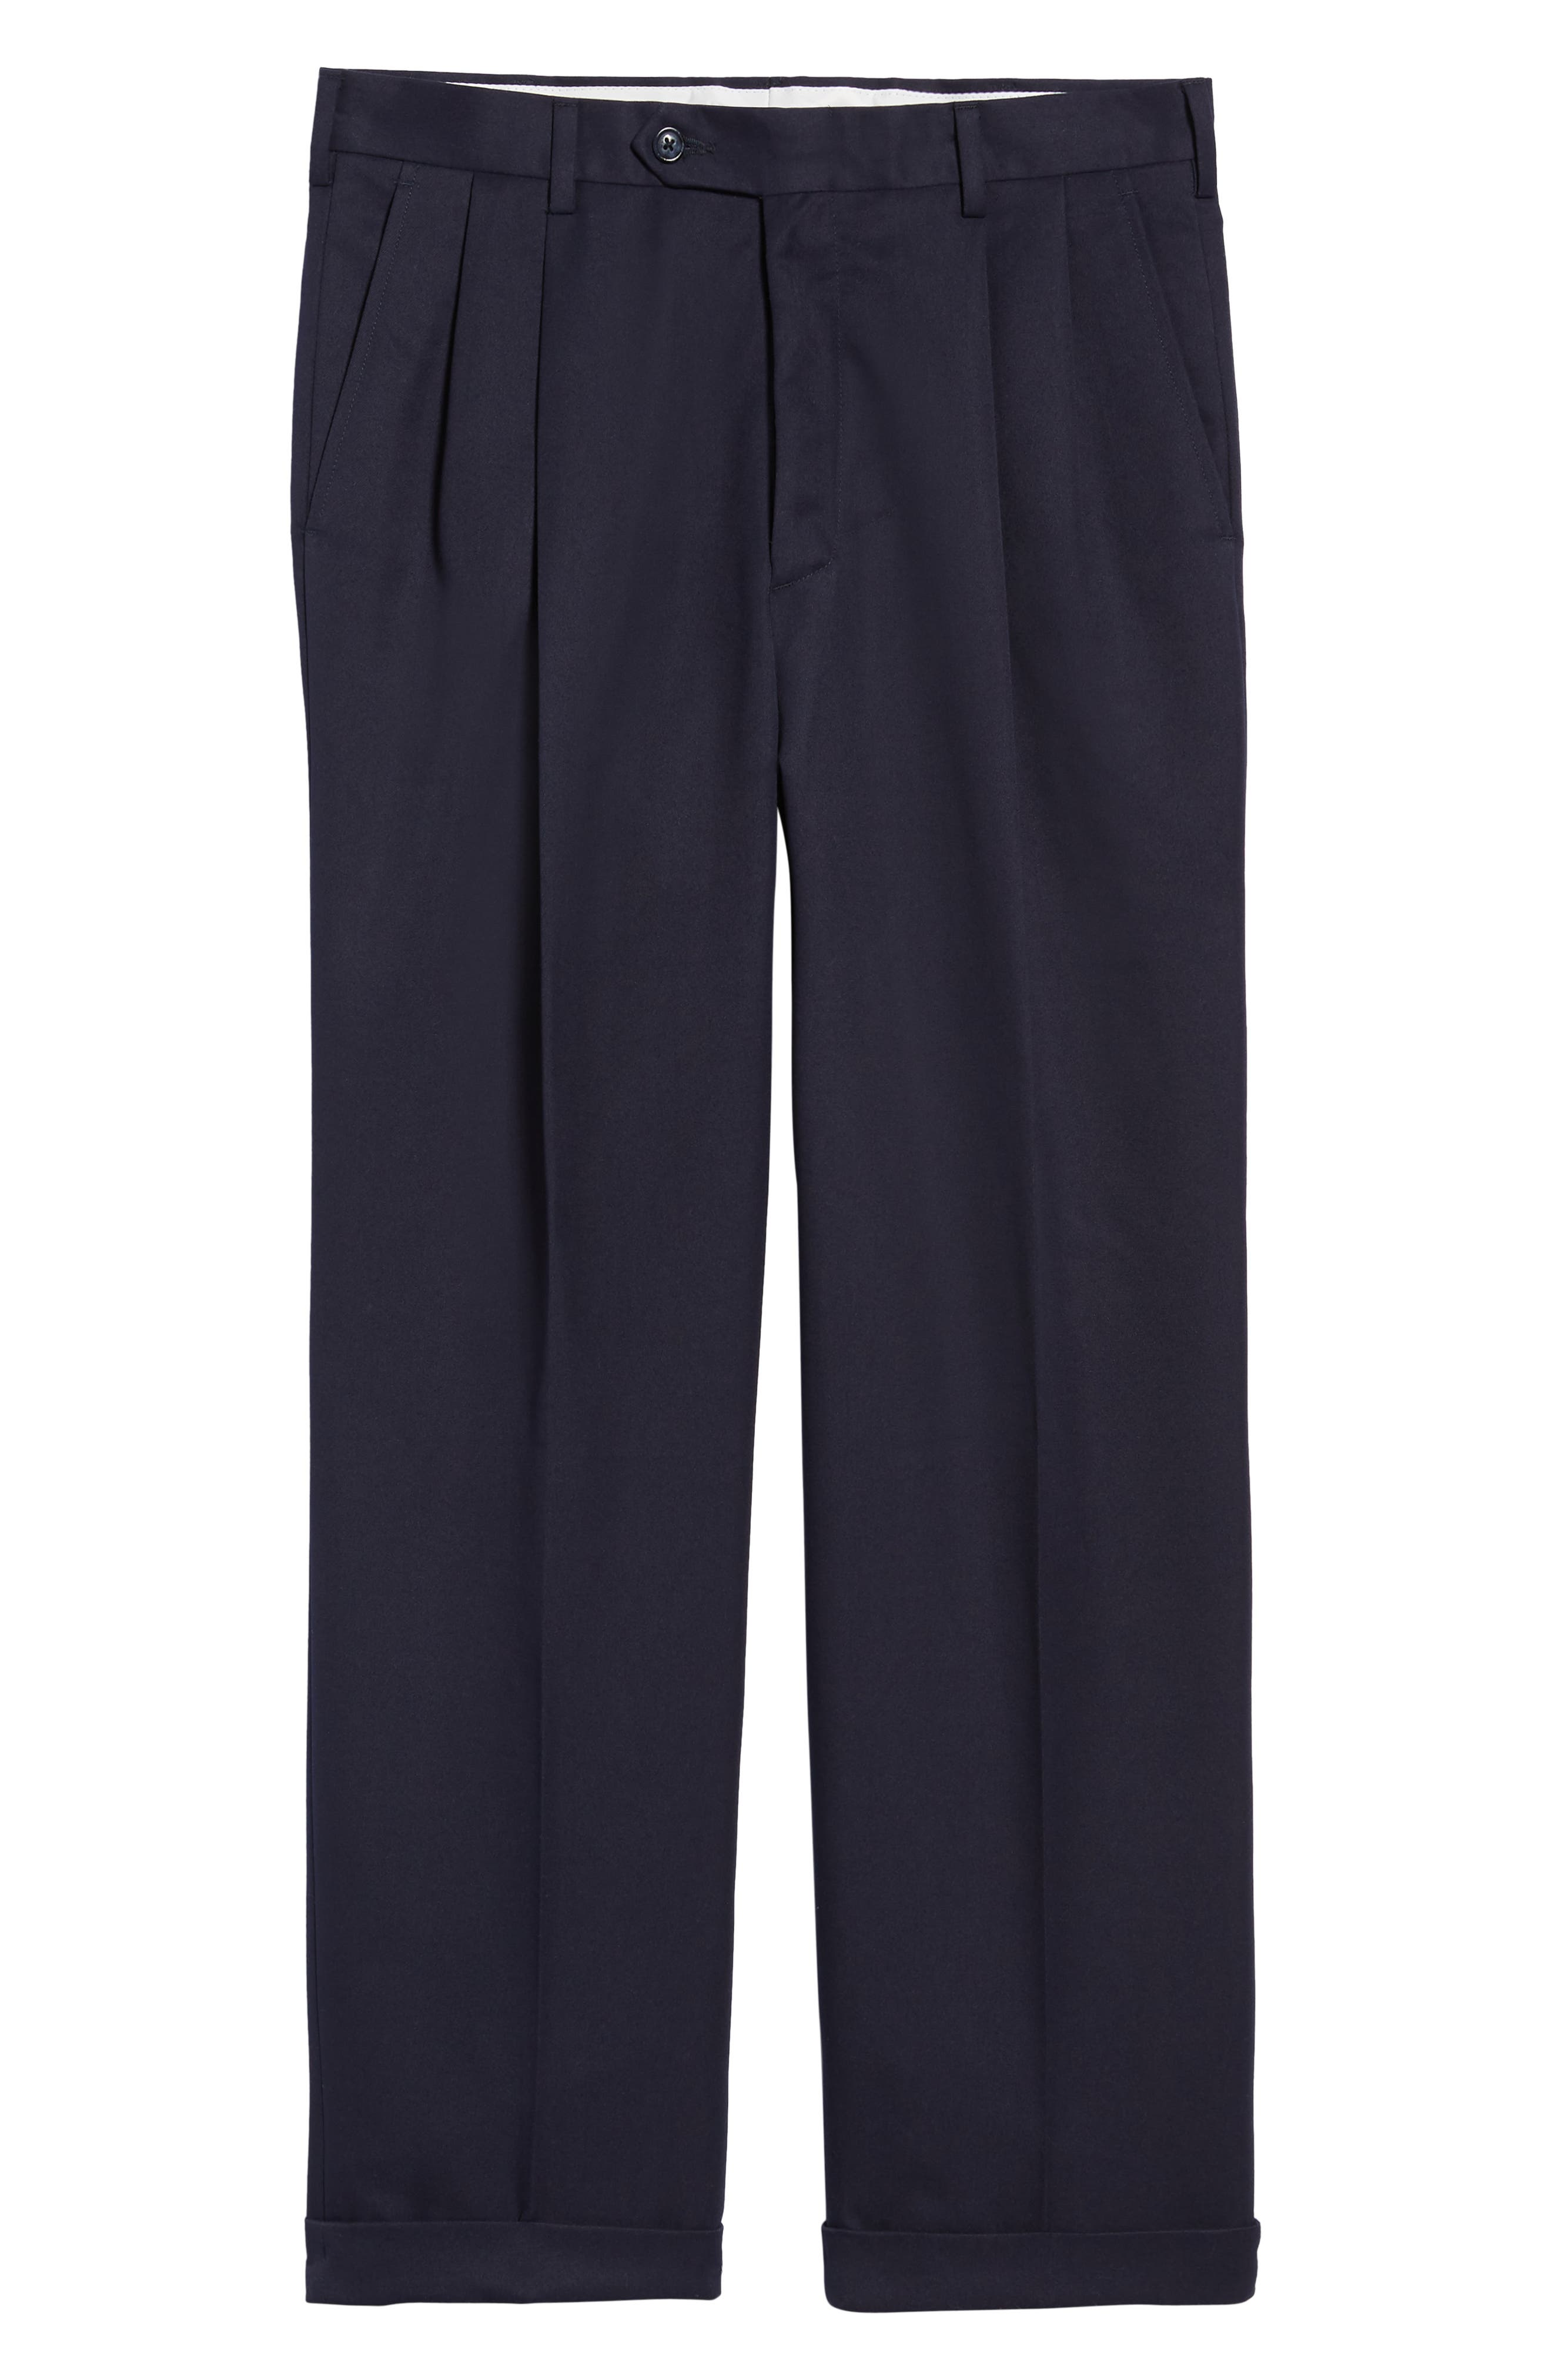 Classic Fit Pleated Microfiber Performance Trousers,                             Alternate thumbnail 6, color,                             NAVY